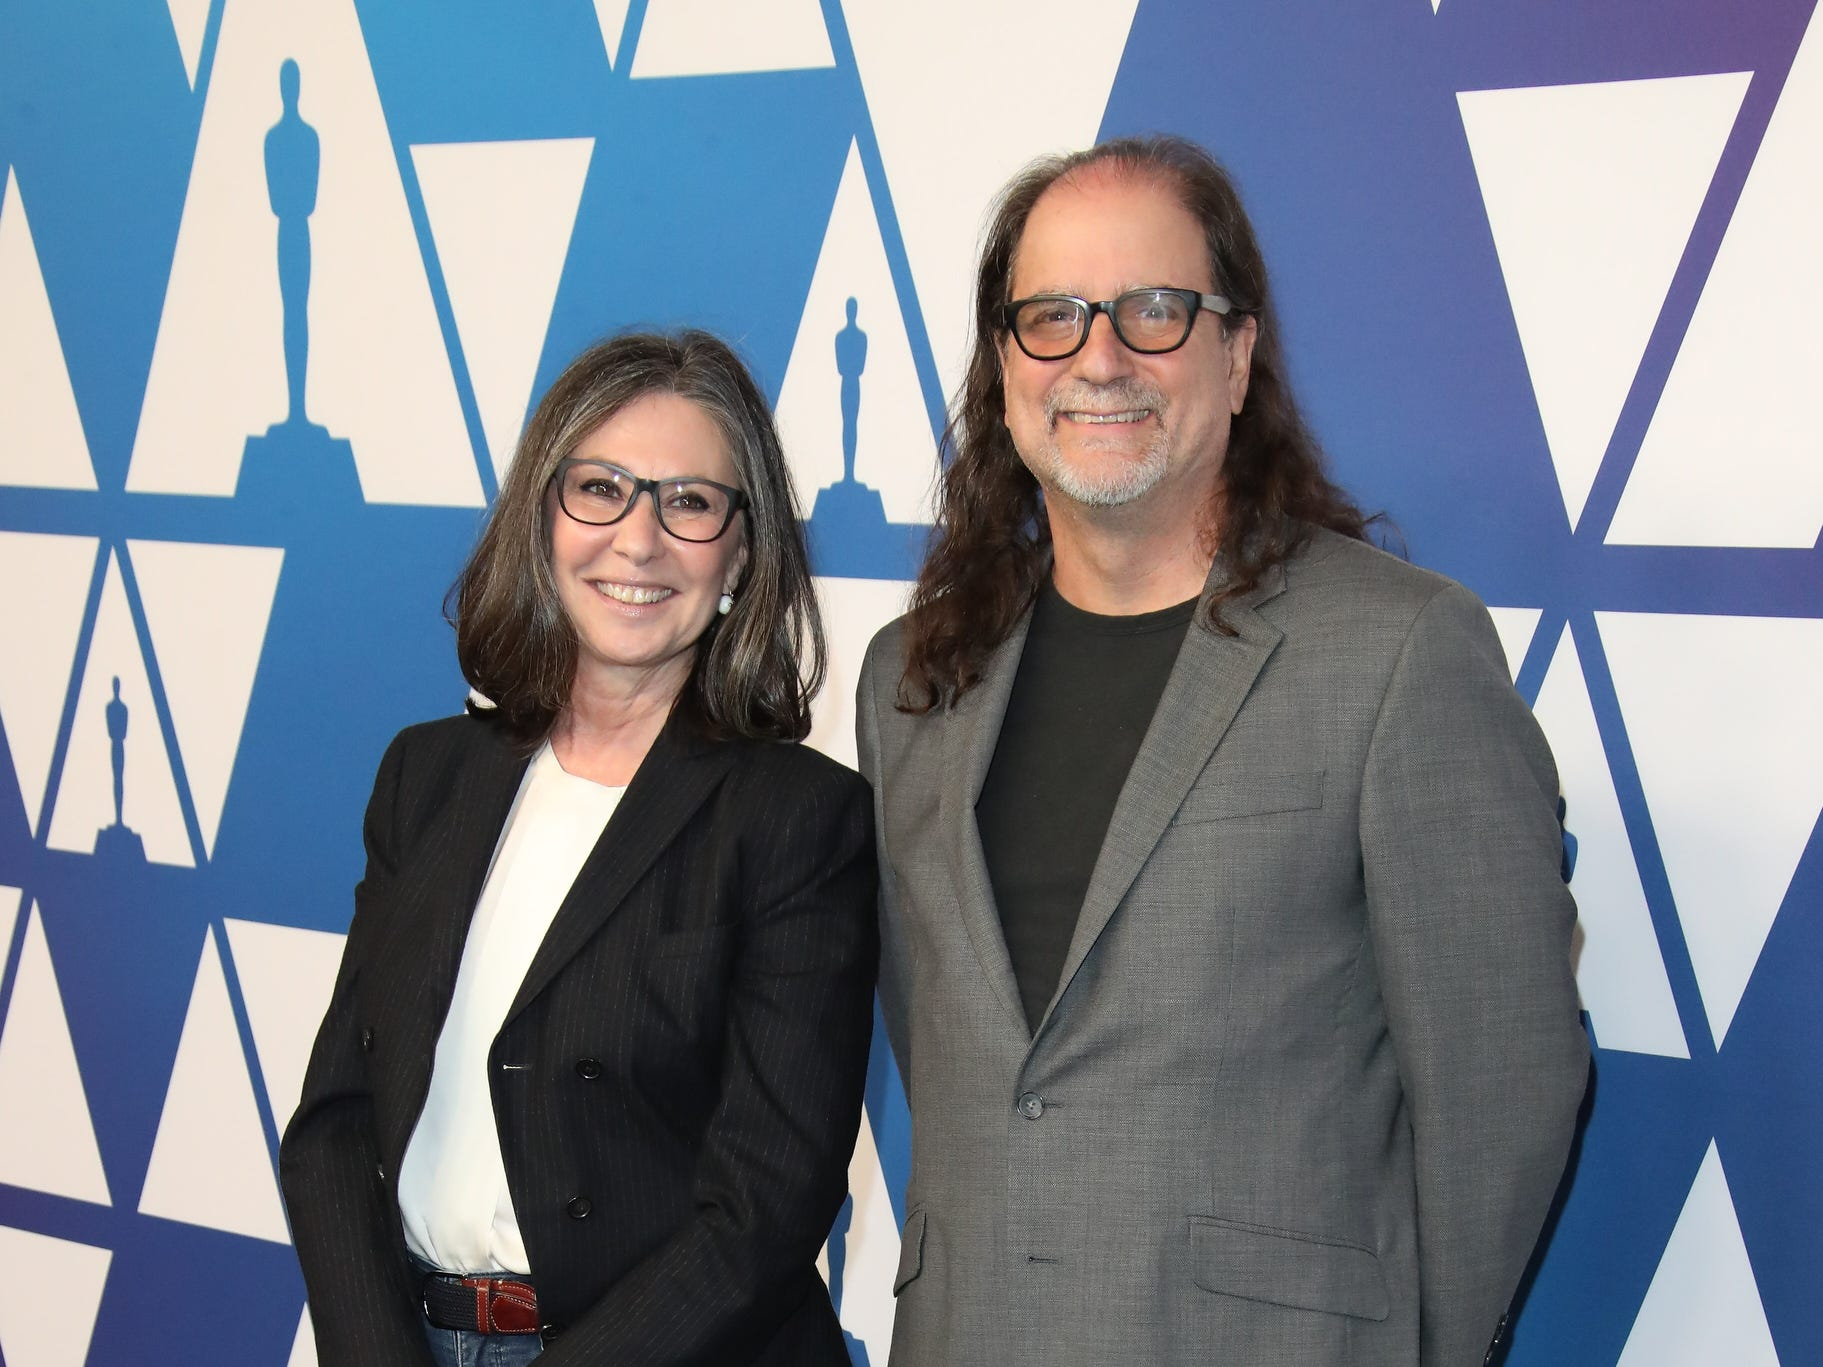 Oscars telecast producers Donna Gigliotti and Glenn Weiss